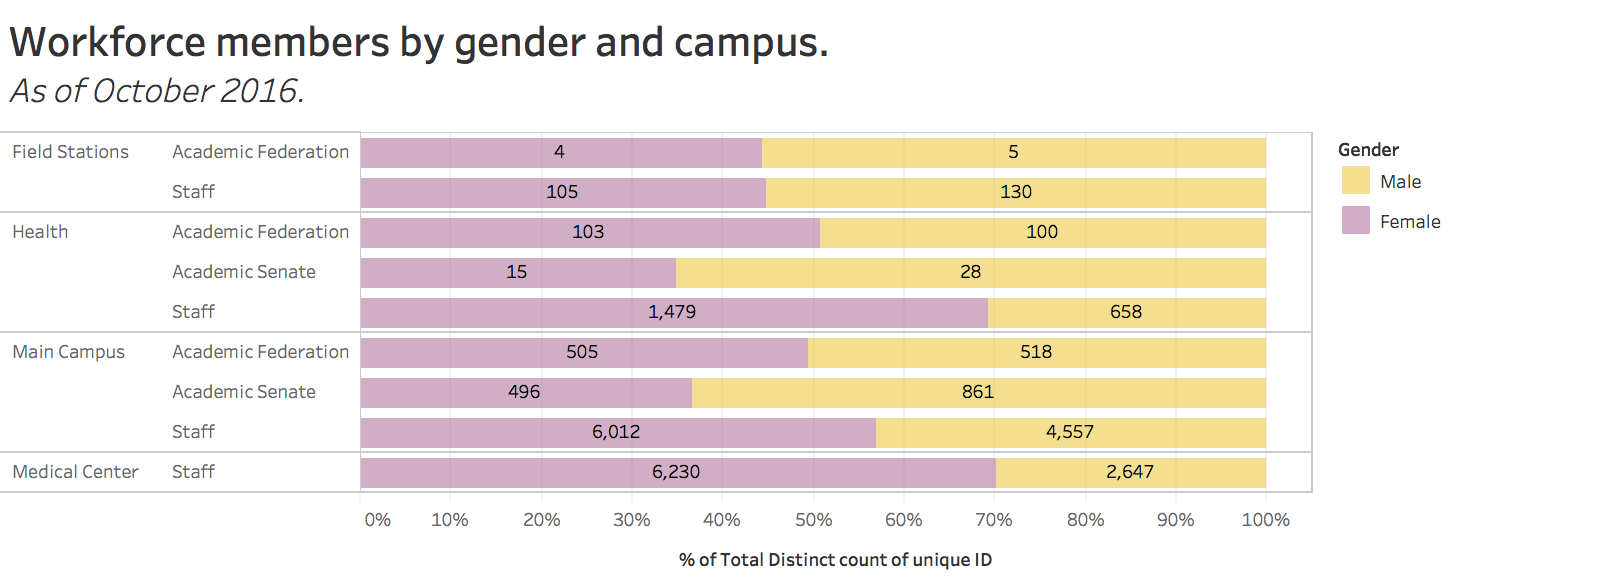 Workforce members by gender and campus